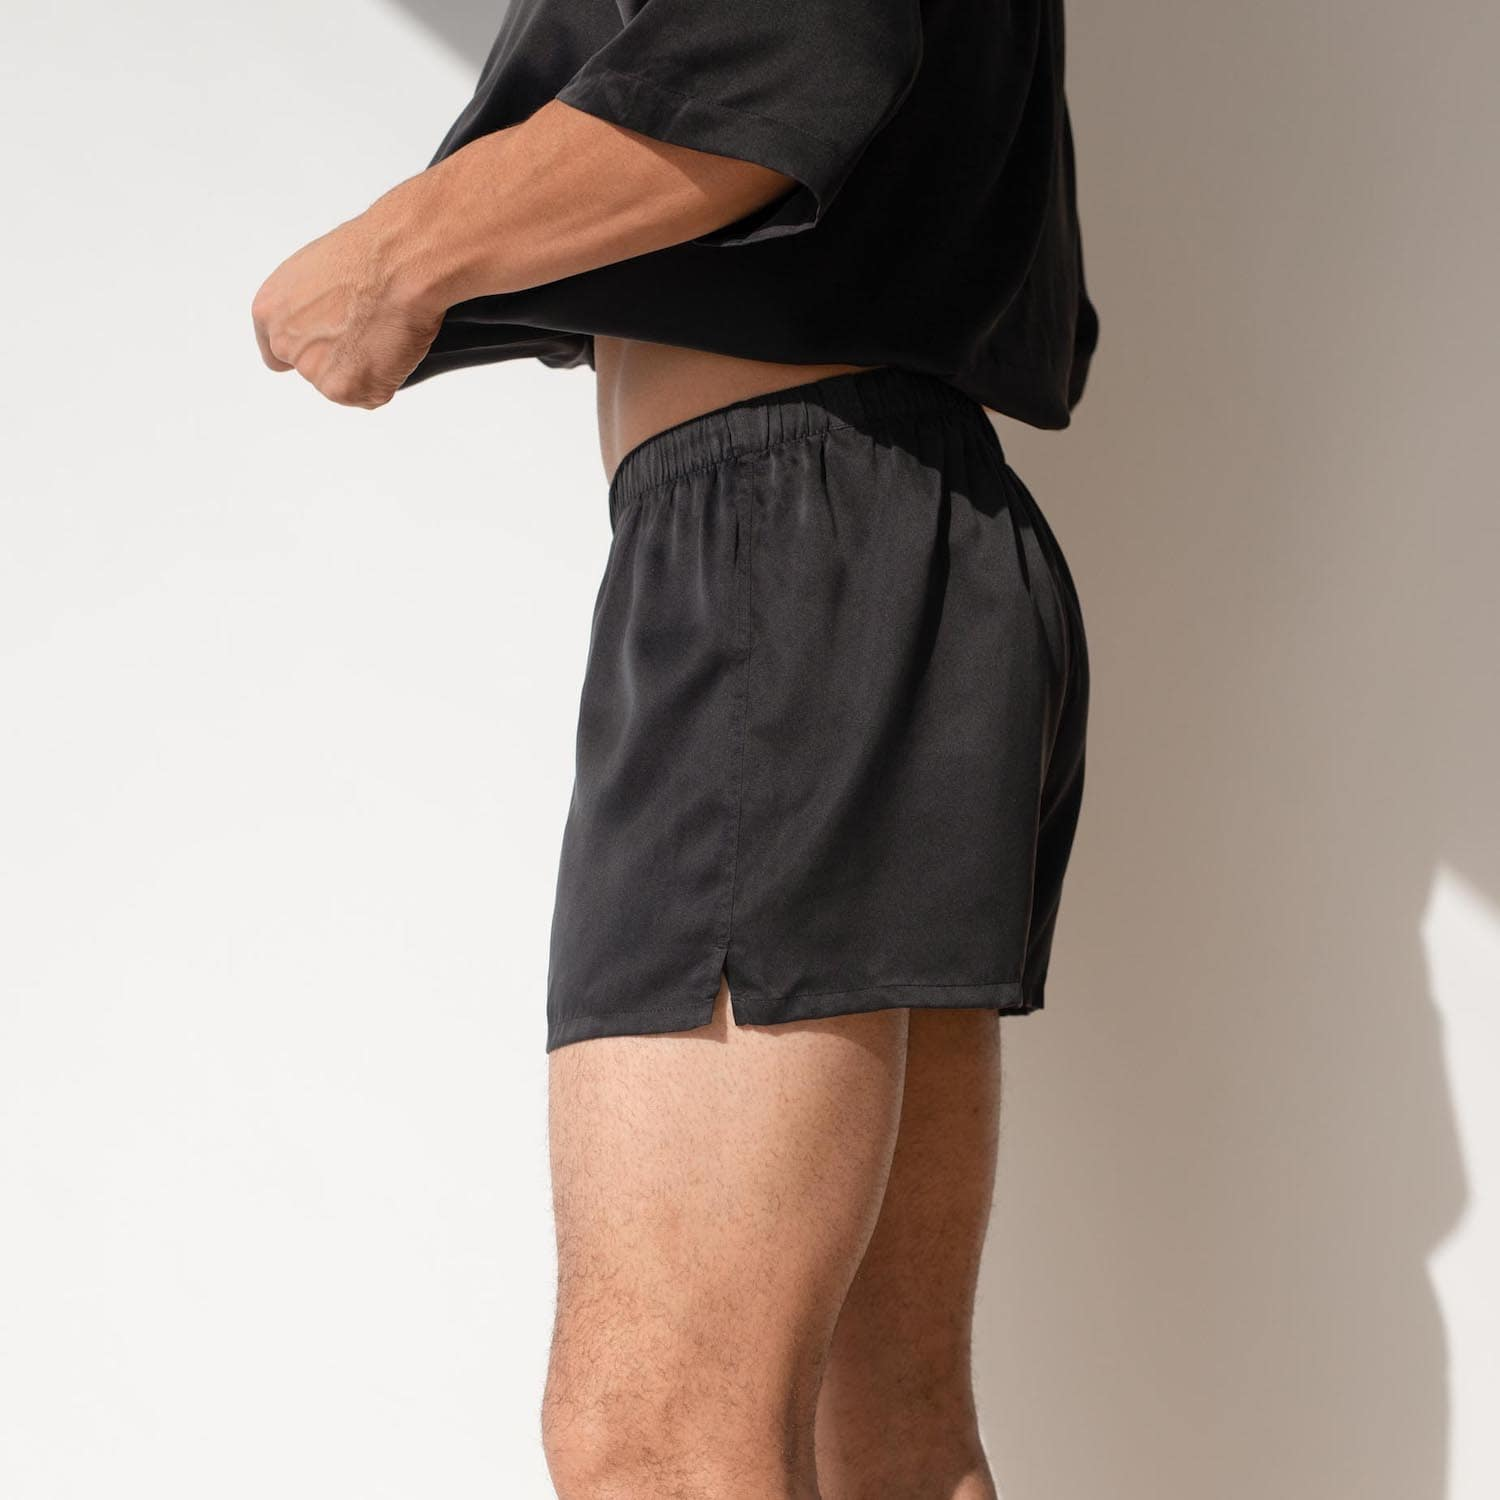 Lahgo Sleepwear Washable Boxer - #Black